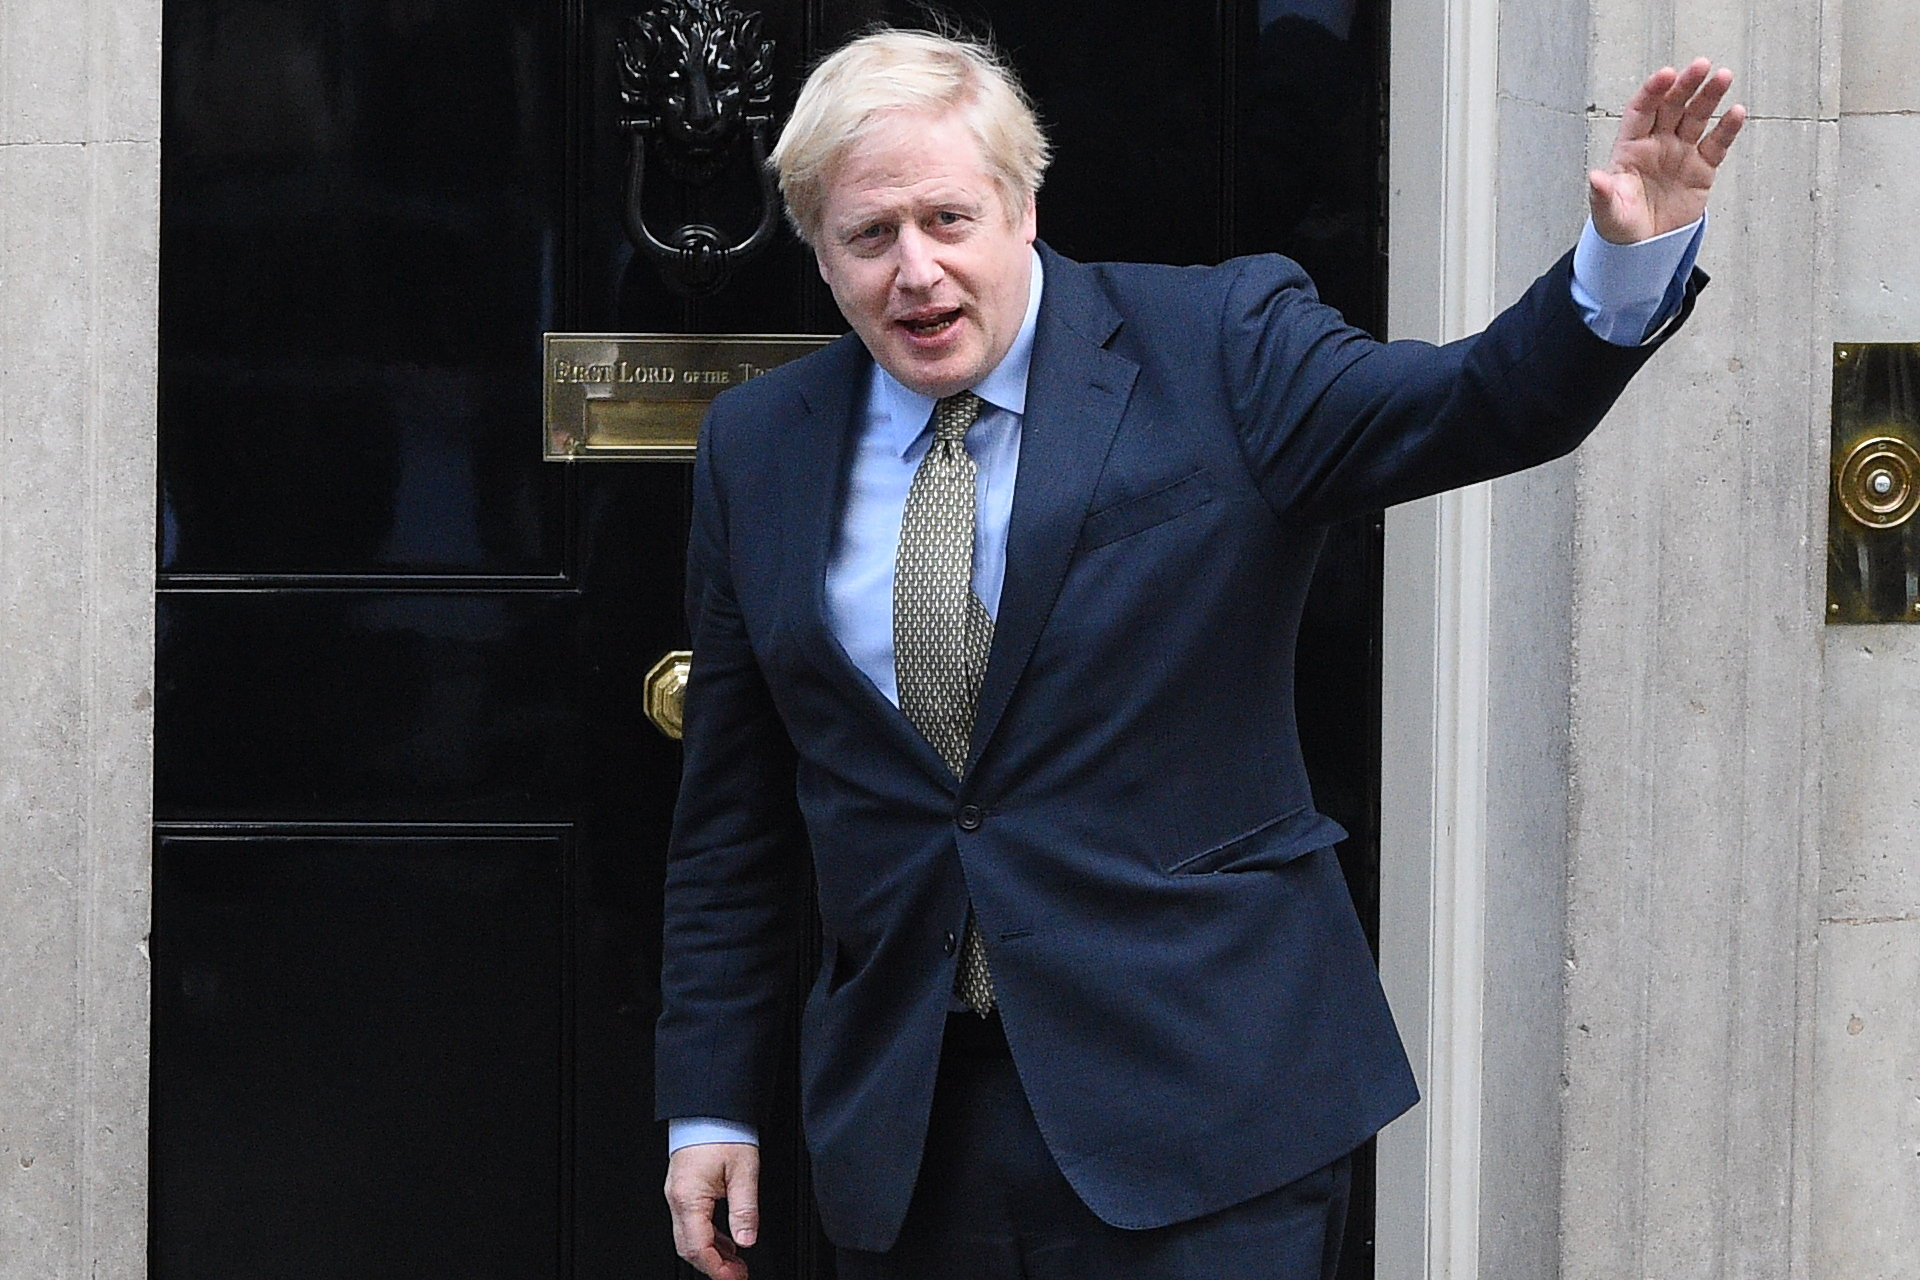 The issue had played out heavily in the run-up to the UK general election, with Johnson having to apologise for any hurt caused following accusations of anti-Muslim bias among the party ranks. Photo courtesy: Twitter/@BorisJohnson